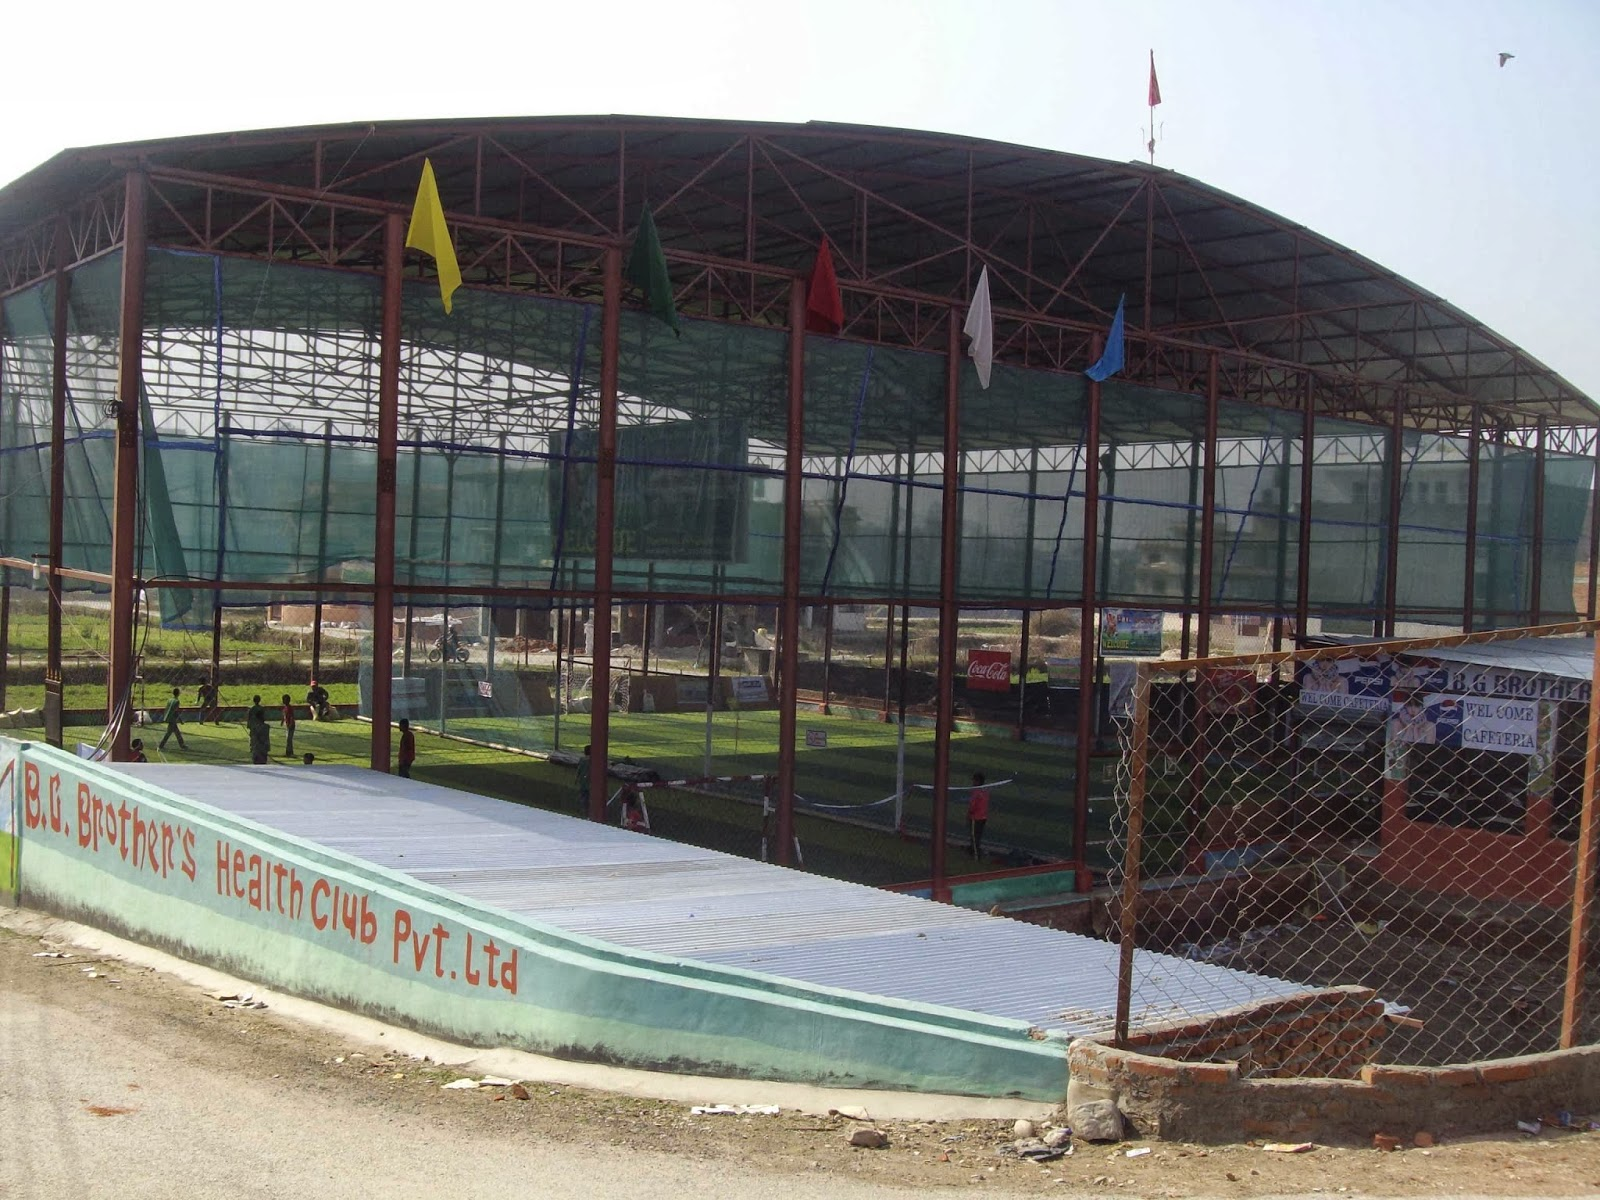 BG Brothers Health Club Pvt. Ltd (THE FUTSAL) - photo